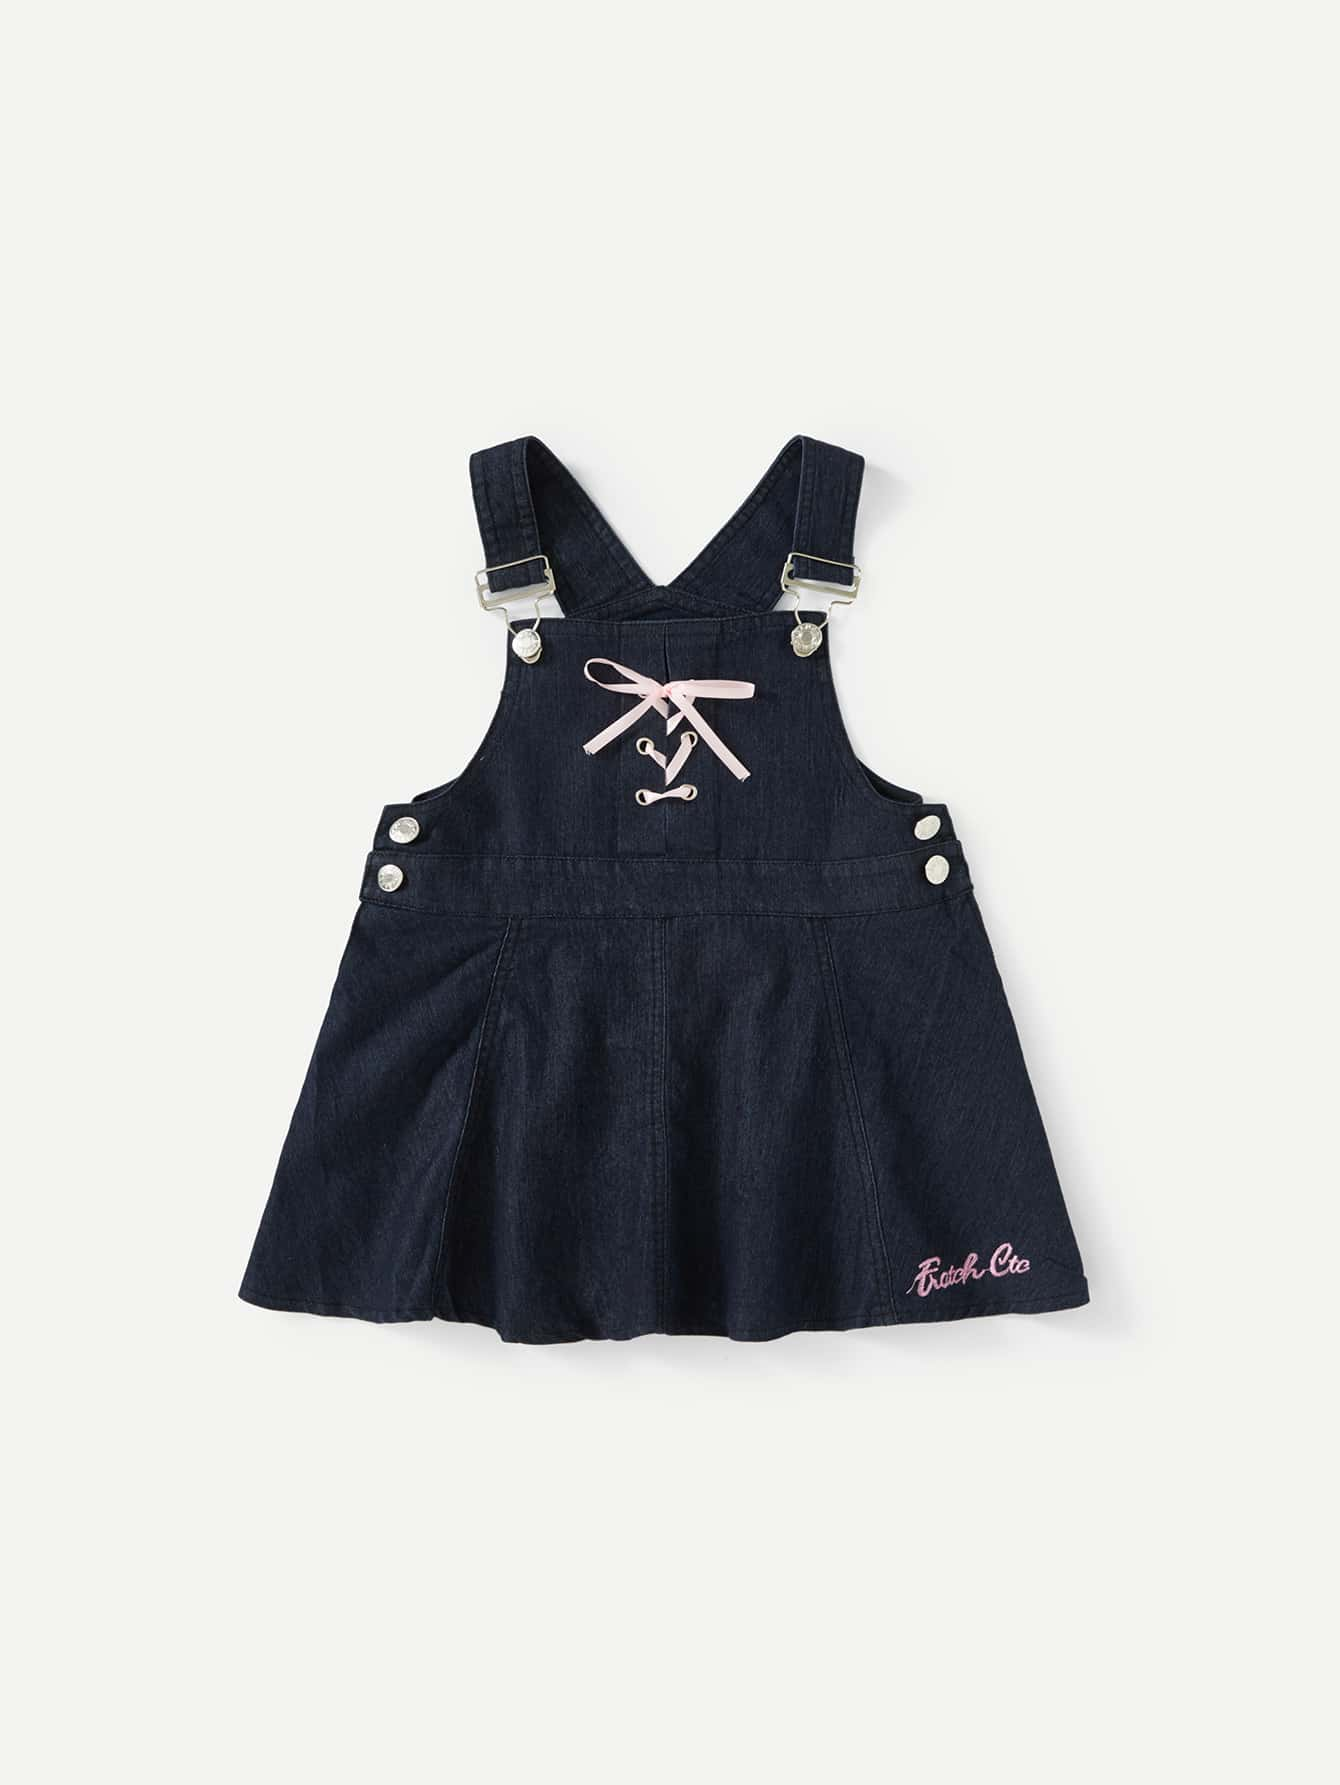 Lace Up Denim Overall Dress overall yumi overall